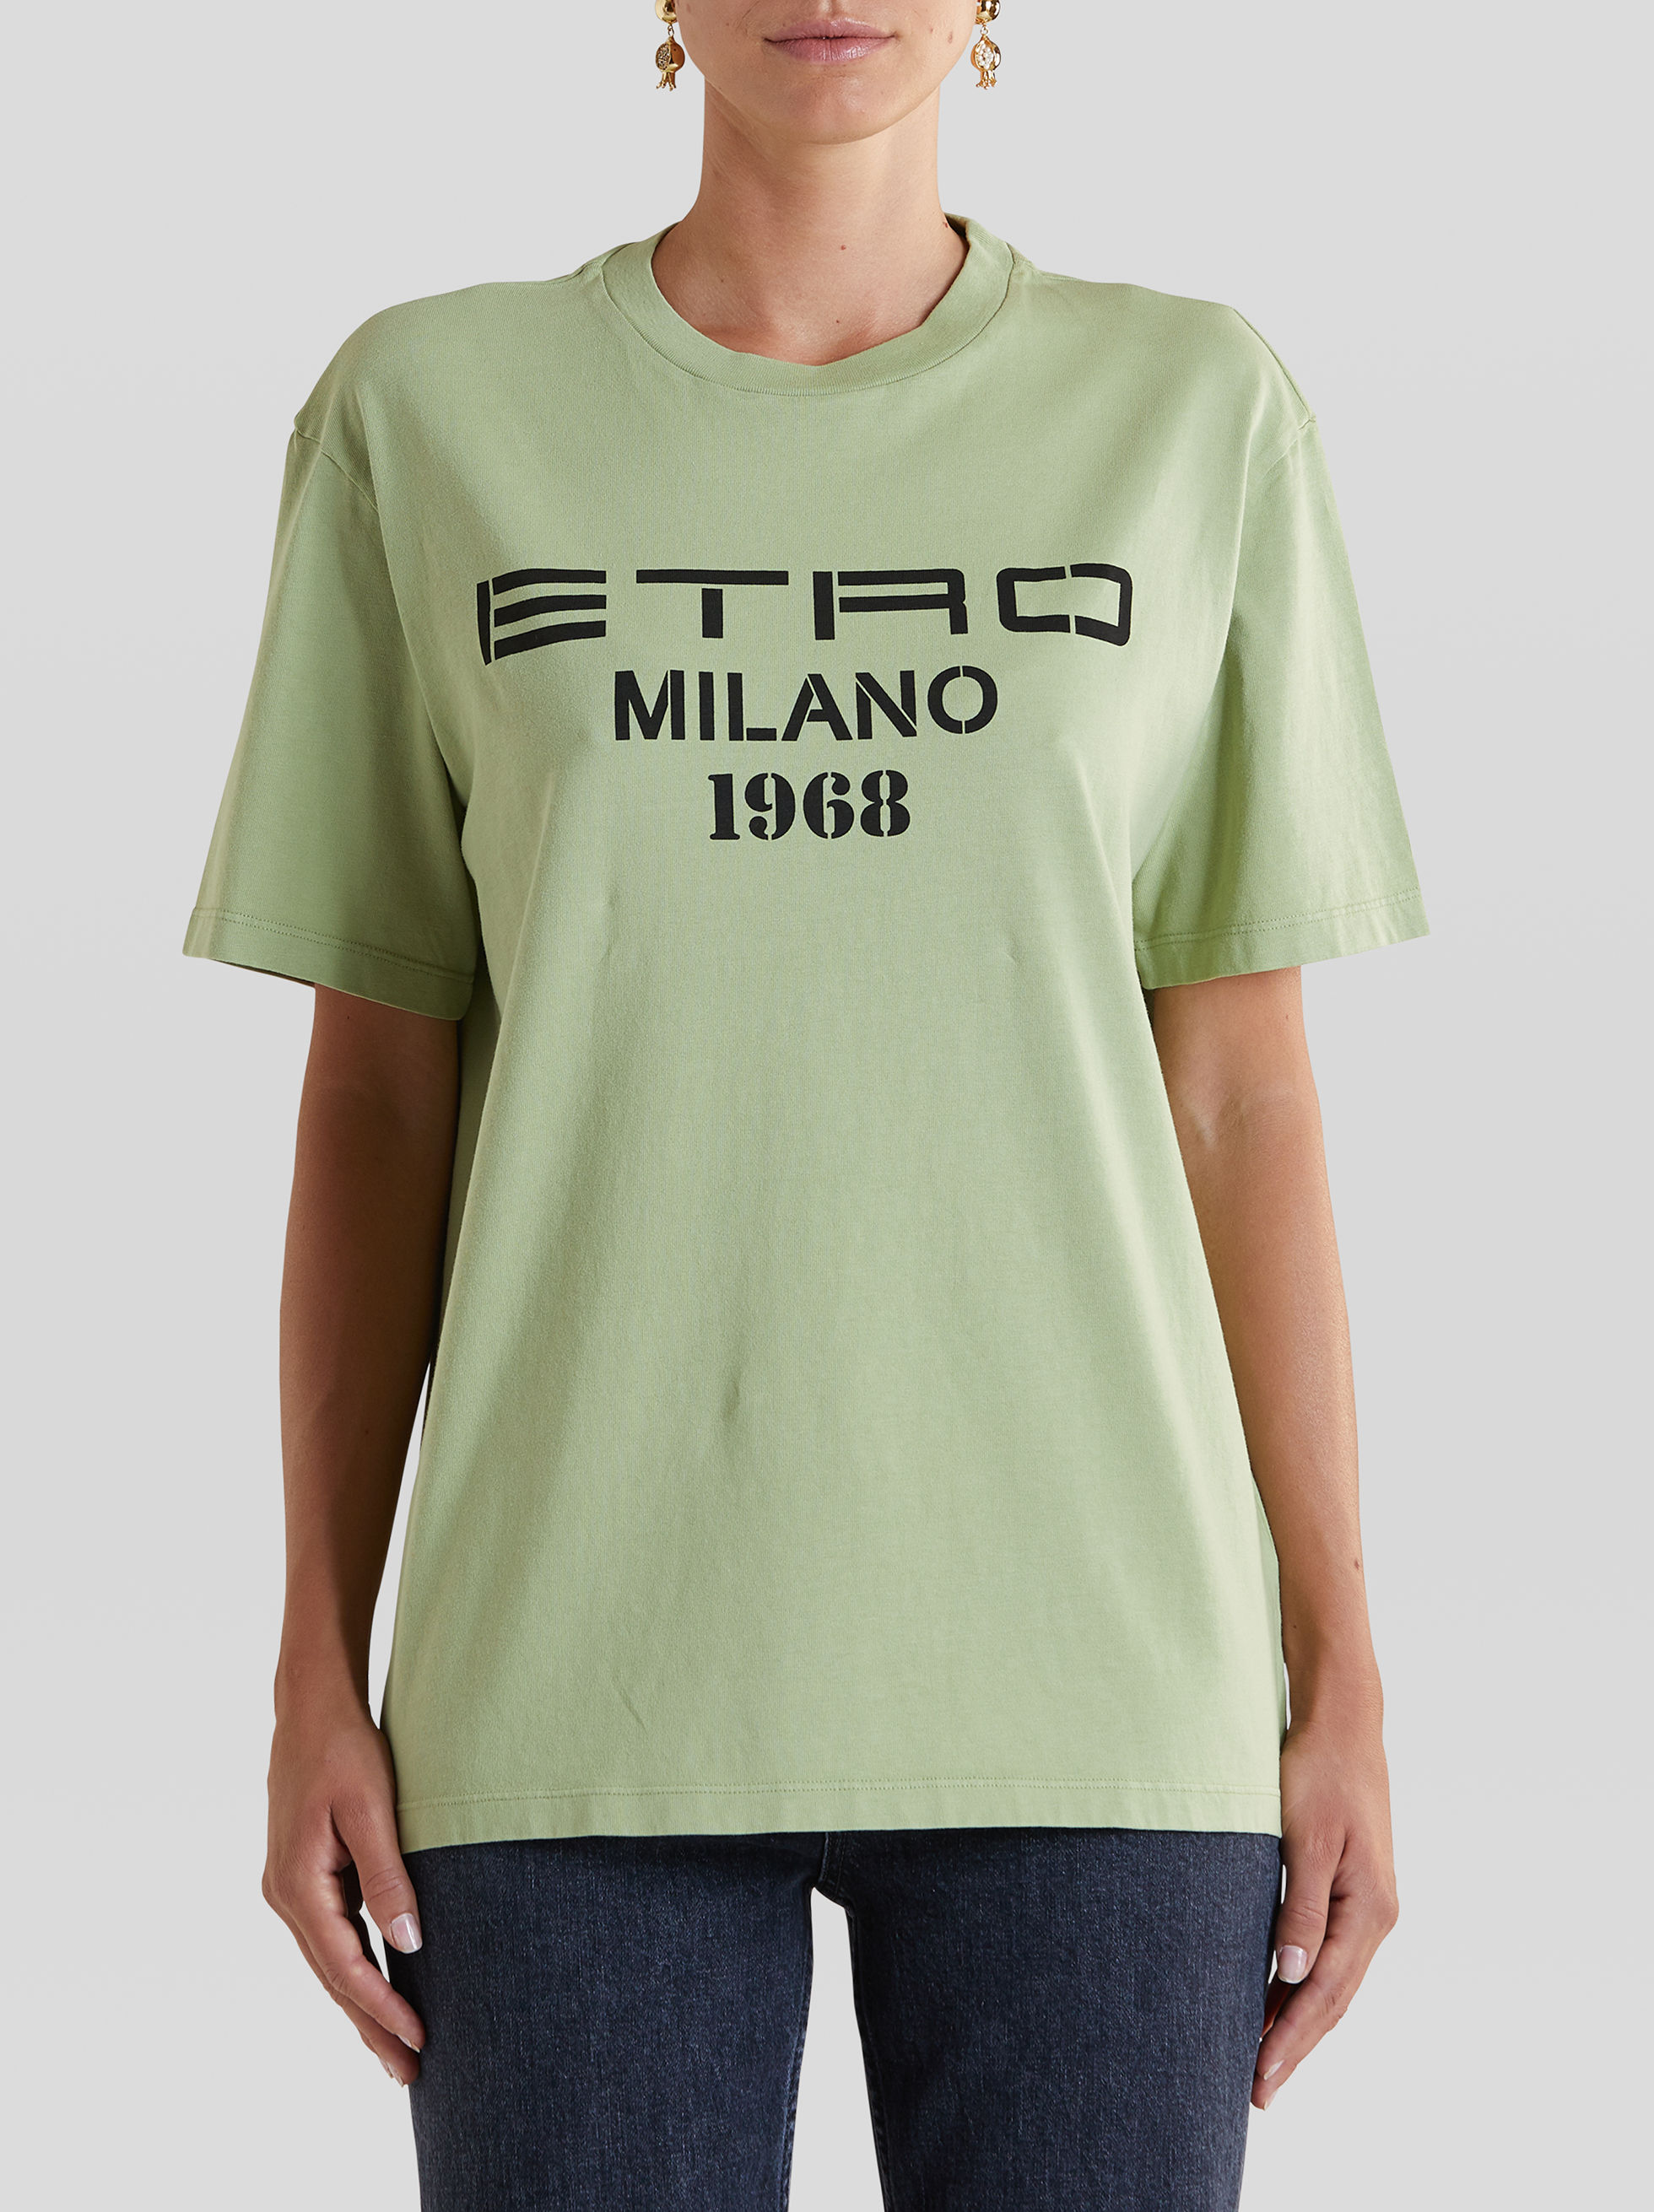 T-SHIRT WITH ETRO MILANO LOGO